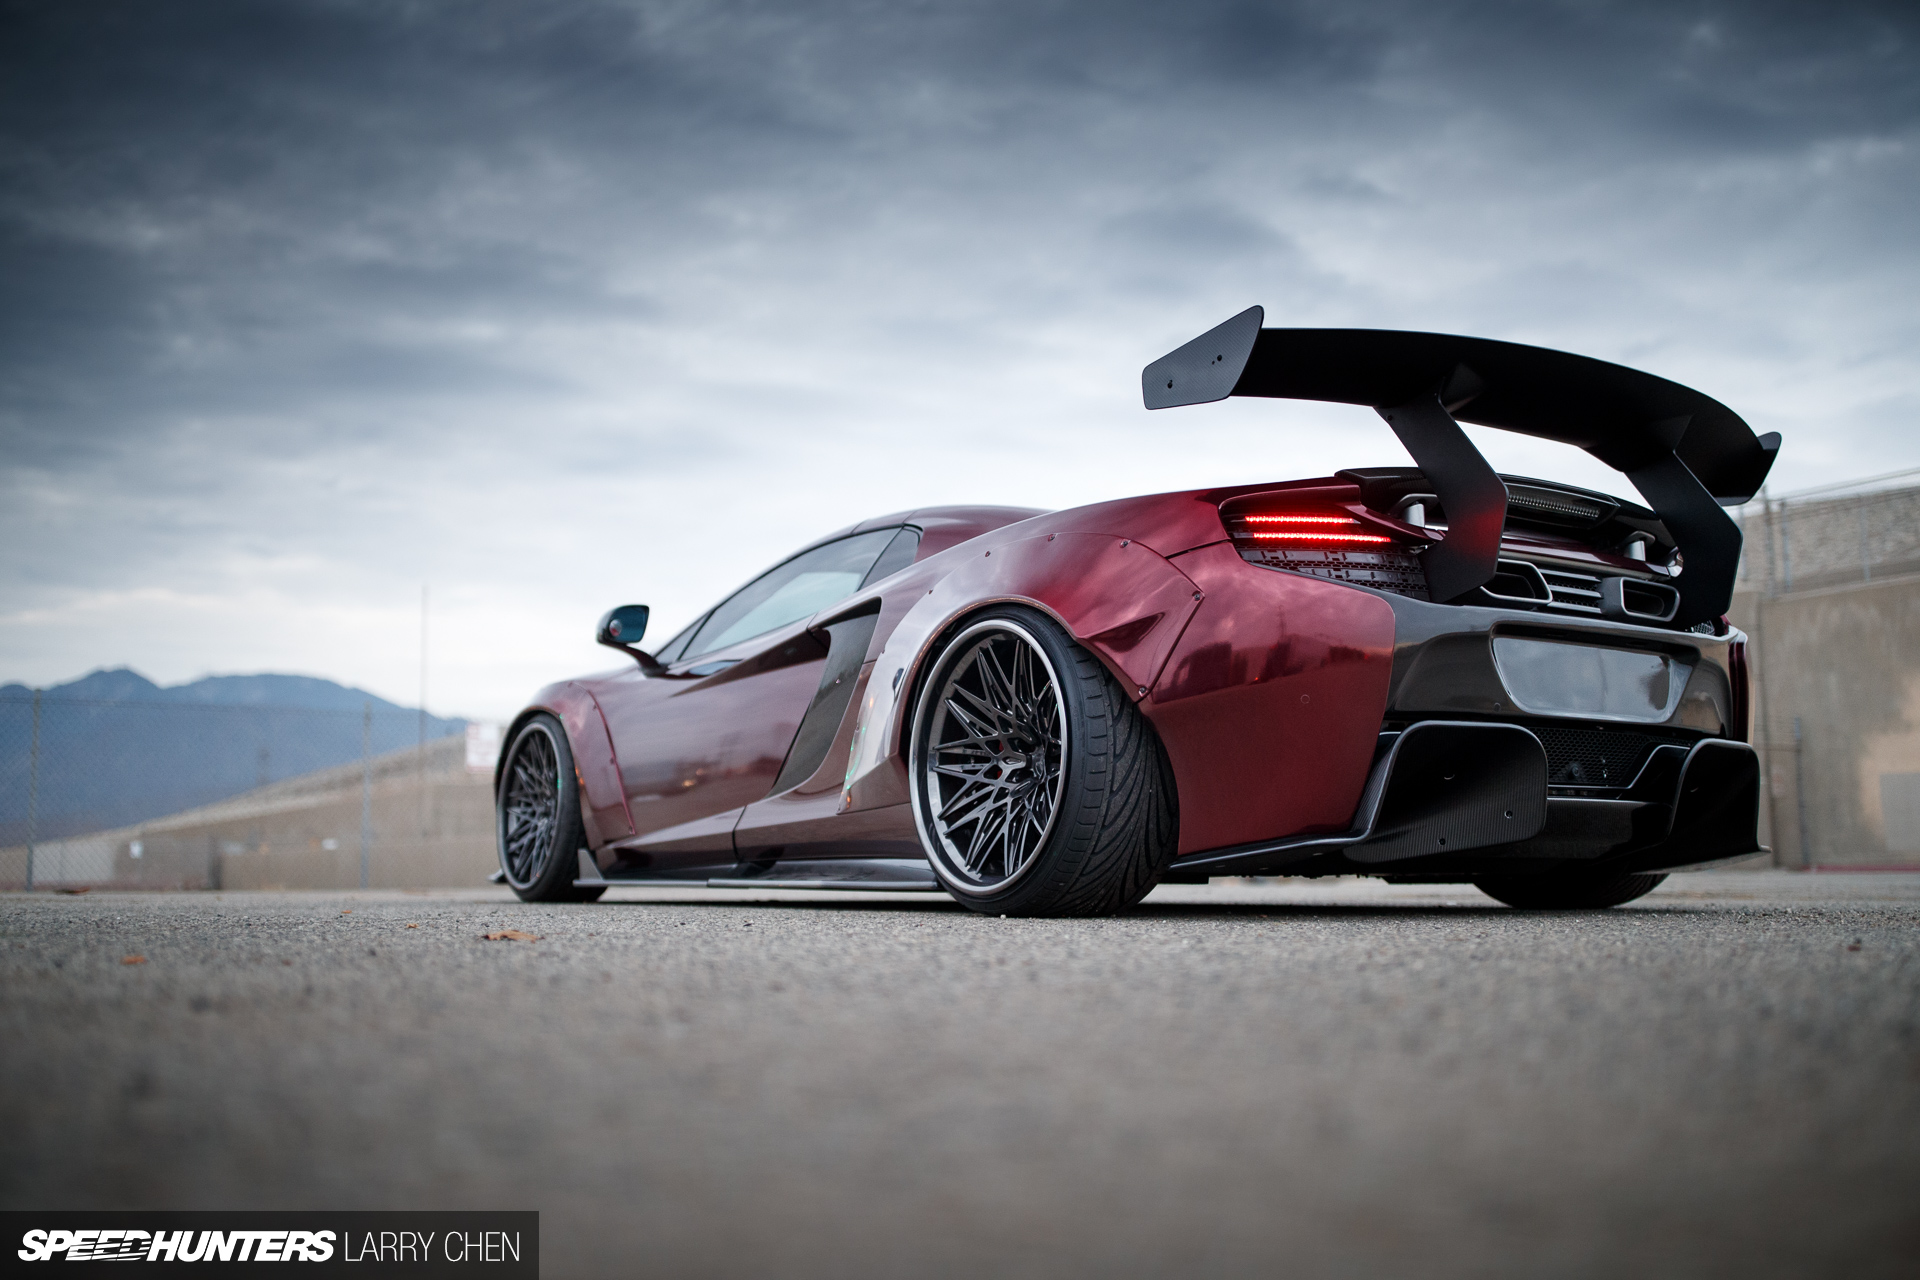 Larry_Chen_Speedhunters_liberty_walk_mclaren_Mp412c-25 LB-WORKS Mclaren 650S / MP4-12c